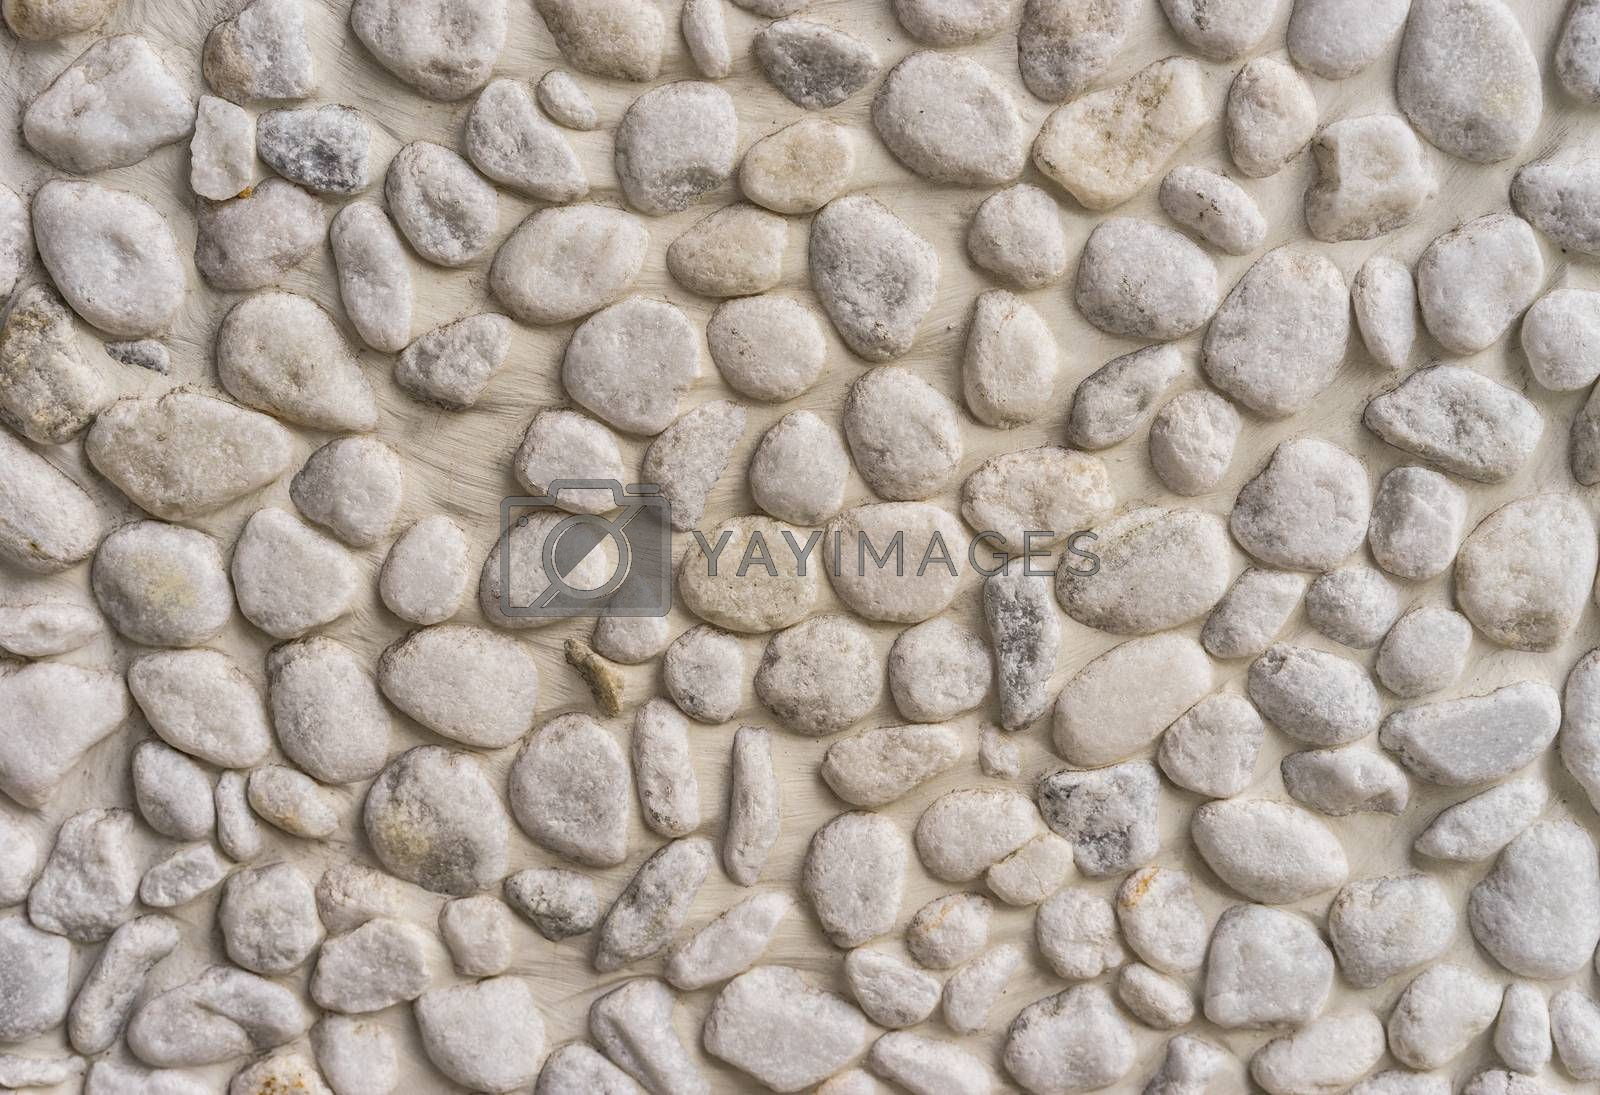 Close-up of gray and white pepples stones background texture